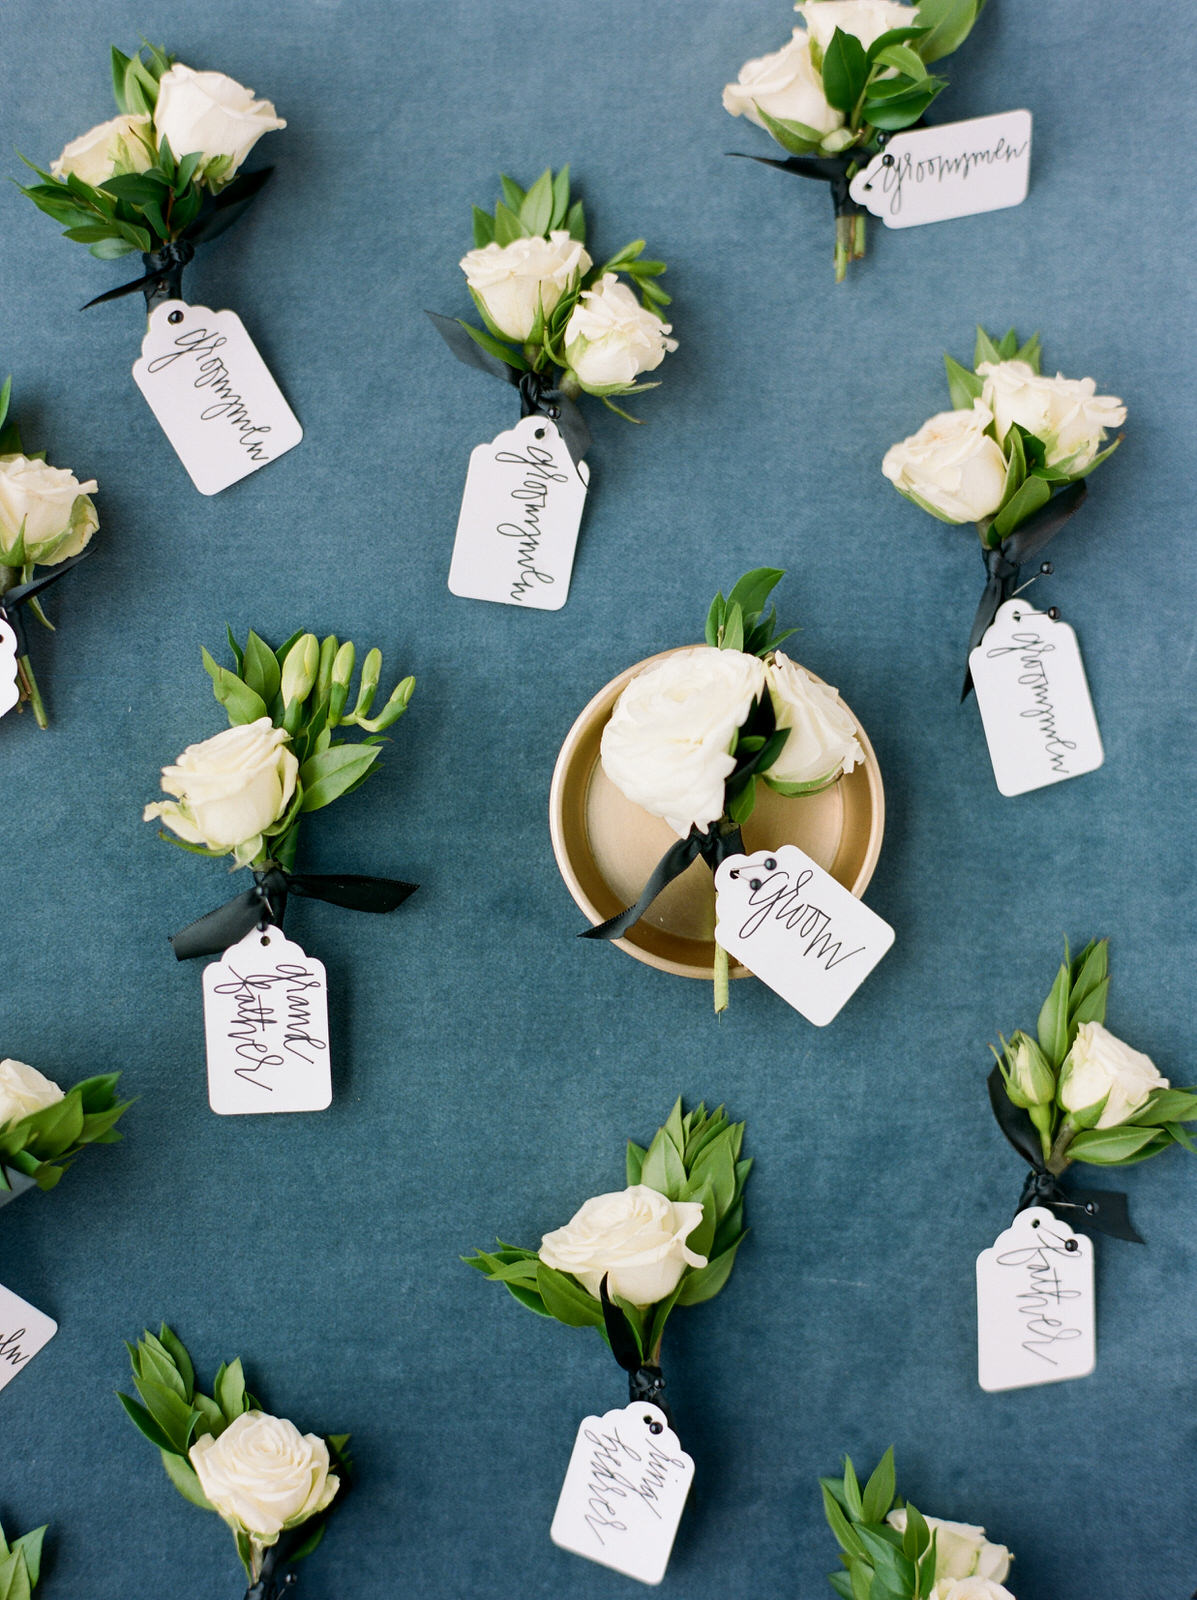 Styling of groom and groomsmen boutonniere's. Styling & Photography:  Josh & Dana Fernandez , Event Design & Floral:  Maxit Flower Design , Event Planner: Emily Moise,  Keely Thorne Events